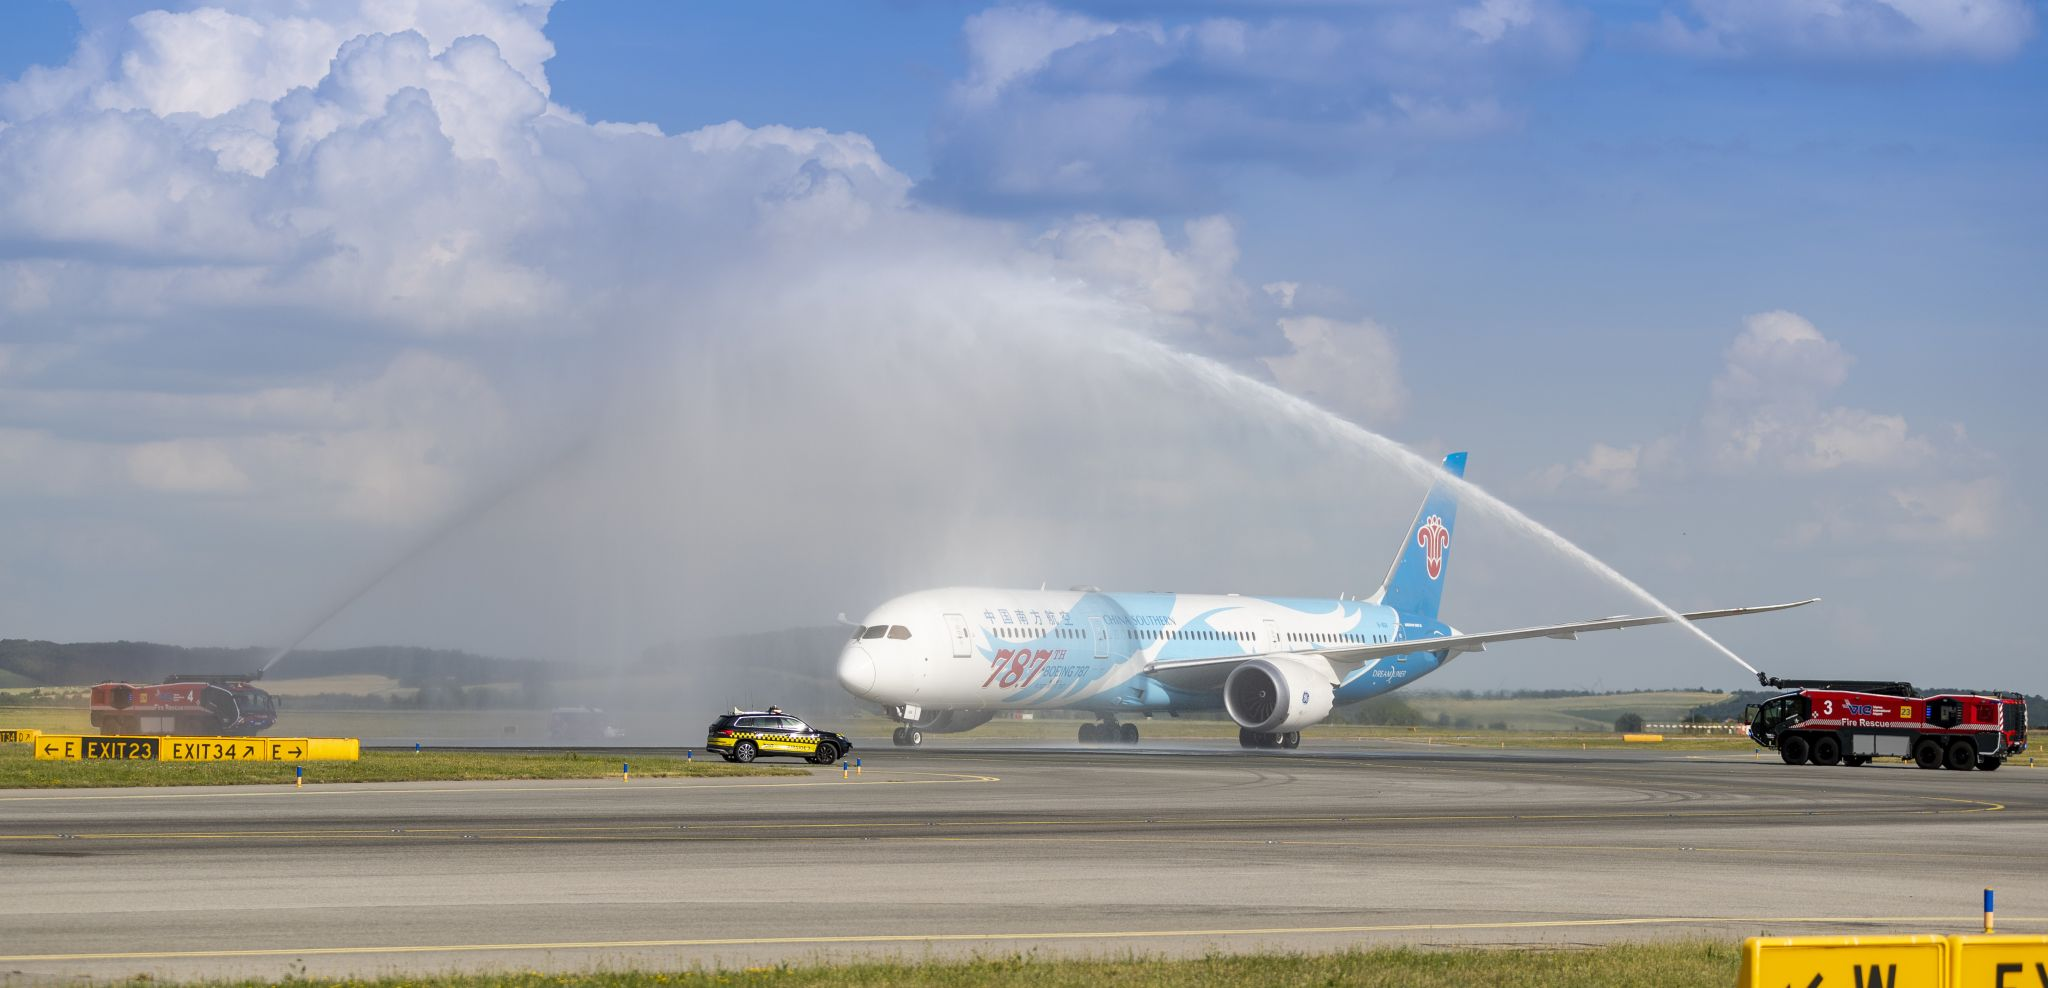 China Southern Airlines am Flughafen Wi